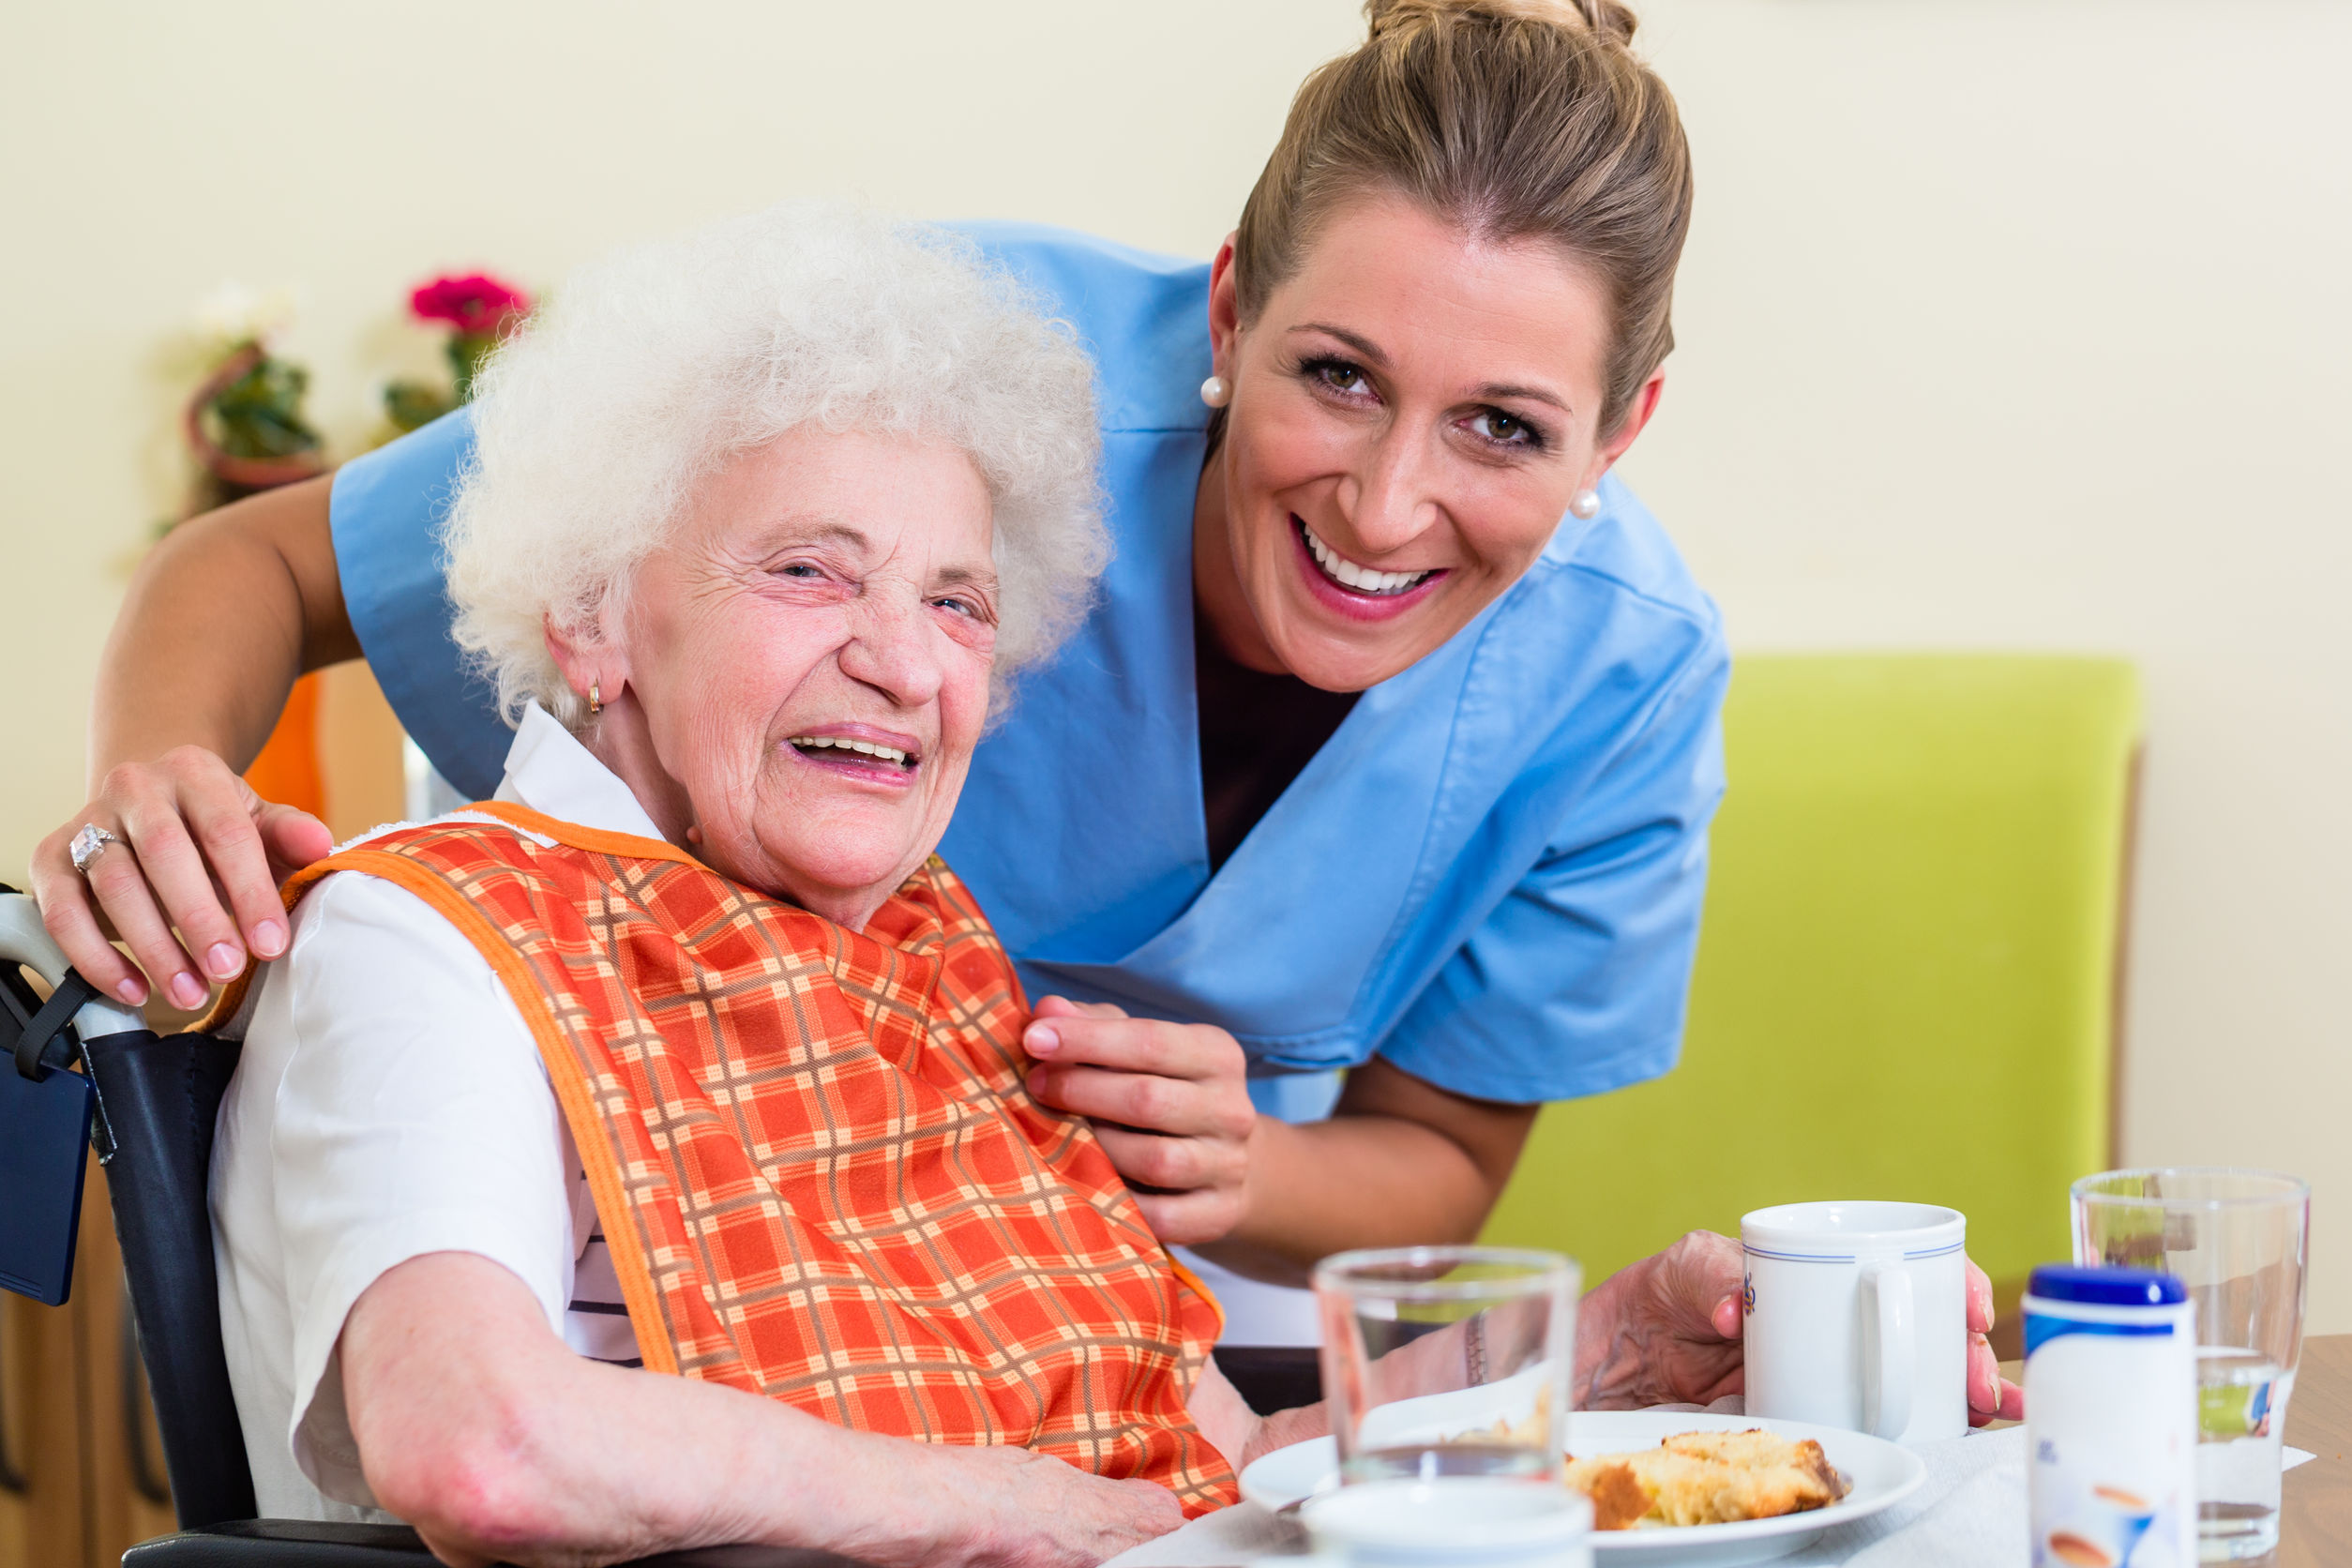 Nurse supporting vulnerable adult who is lacking capacity